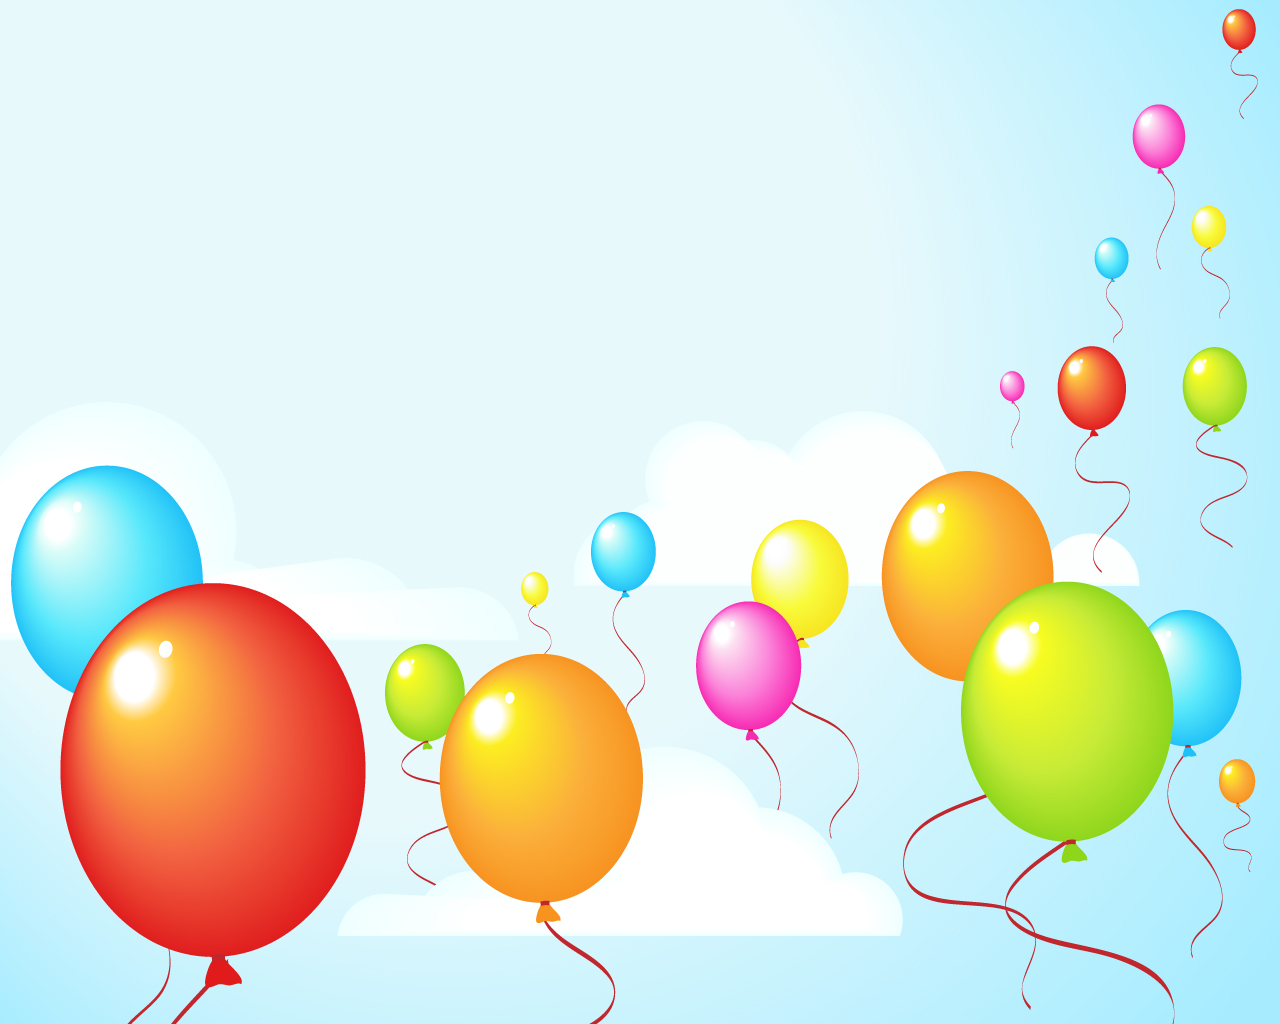 Free Balloon Wallpaper